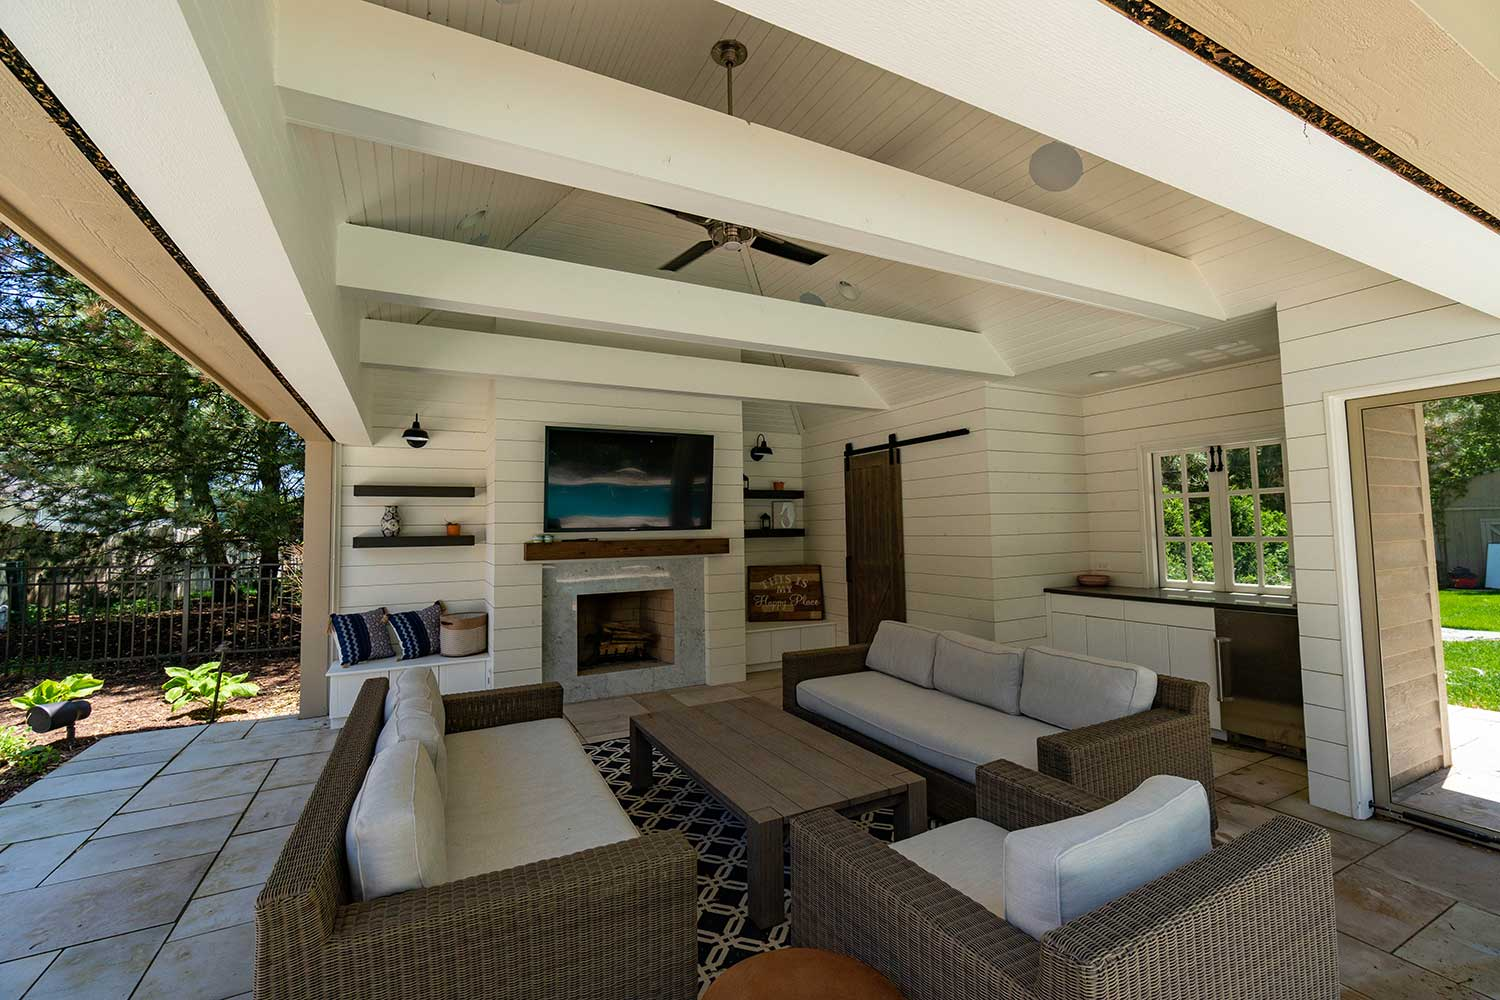 Seating area inside pool shack in front of stone fireplace